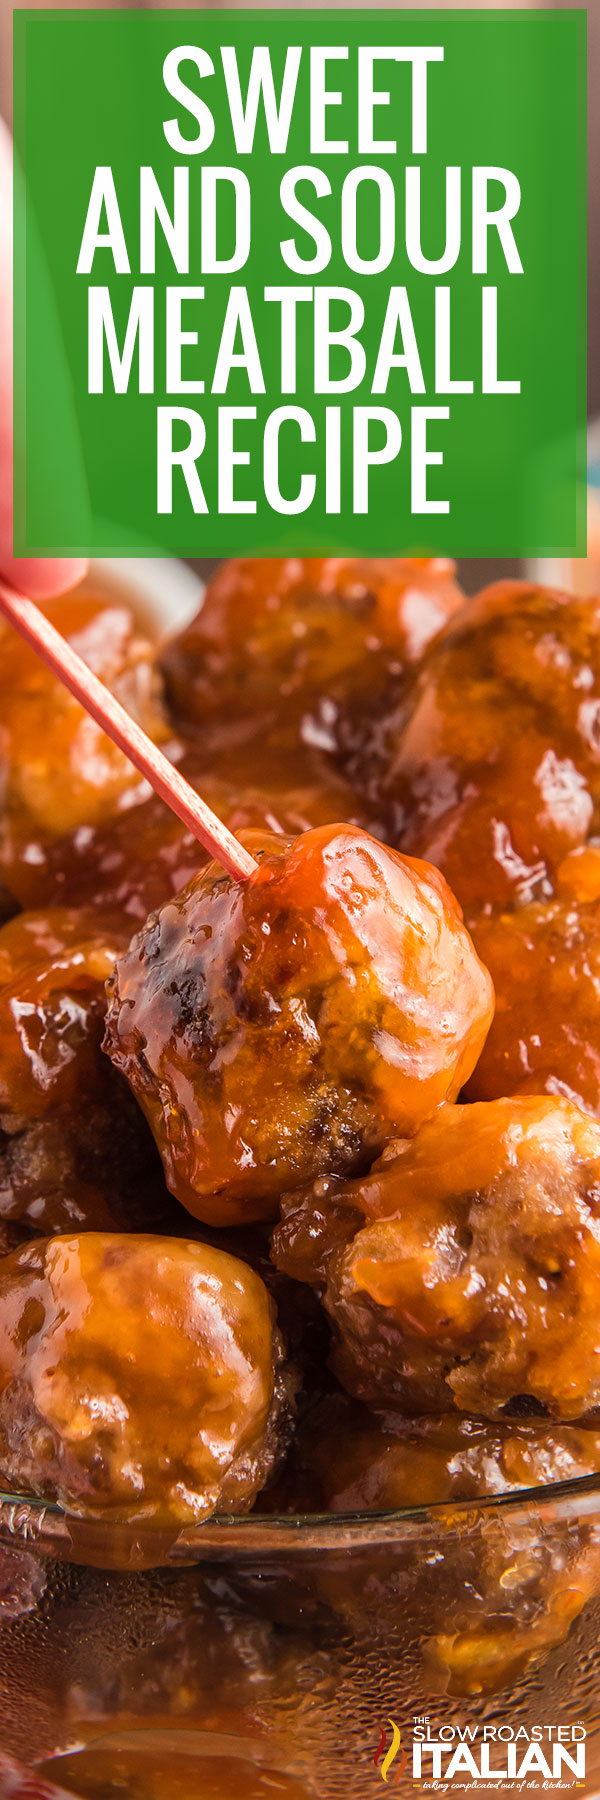 sweet and sour meatballs closeup